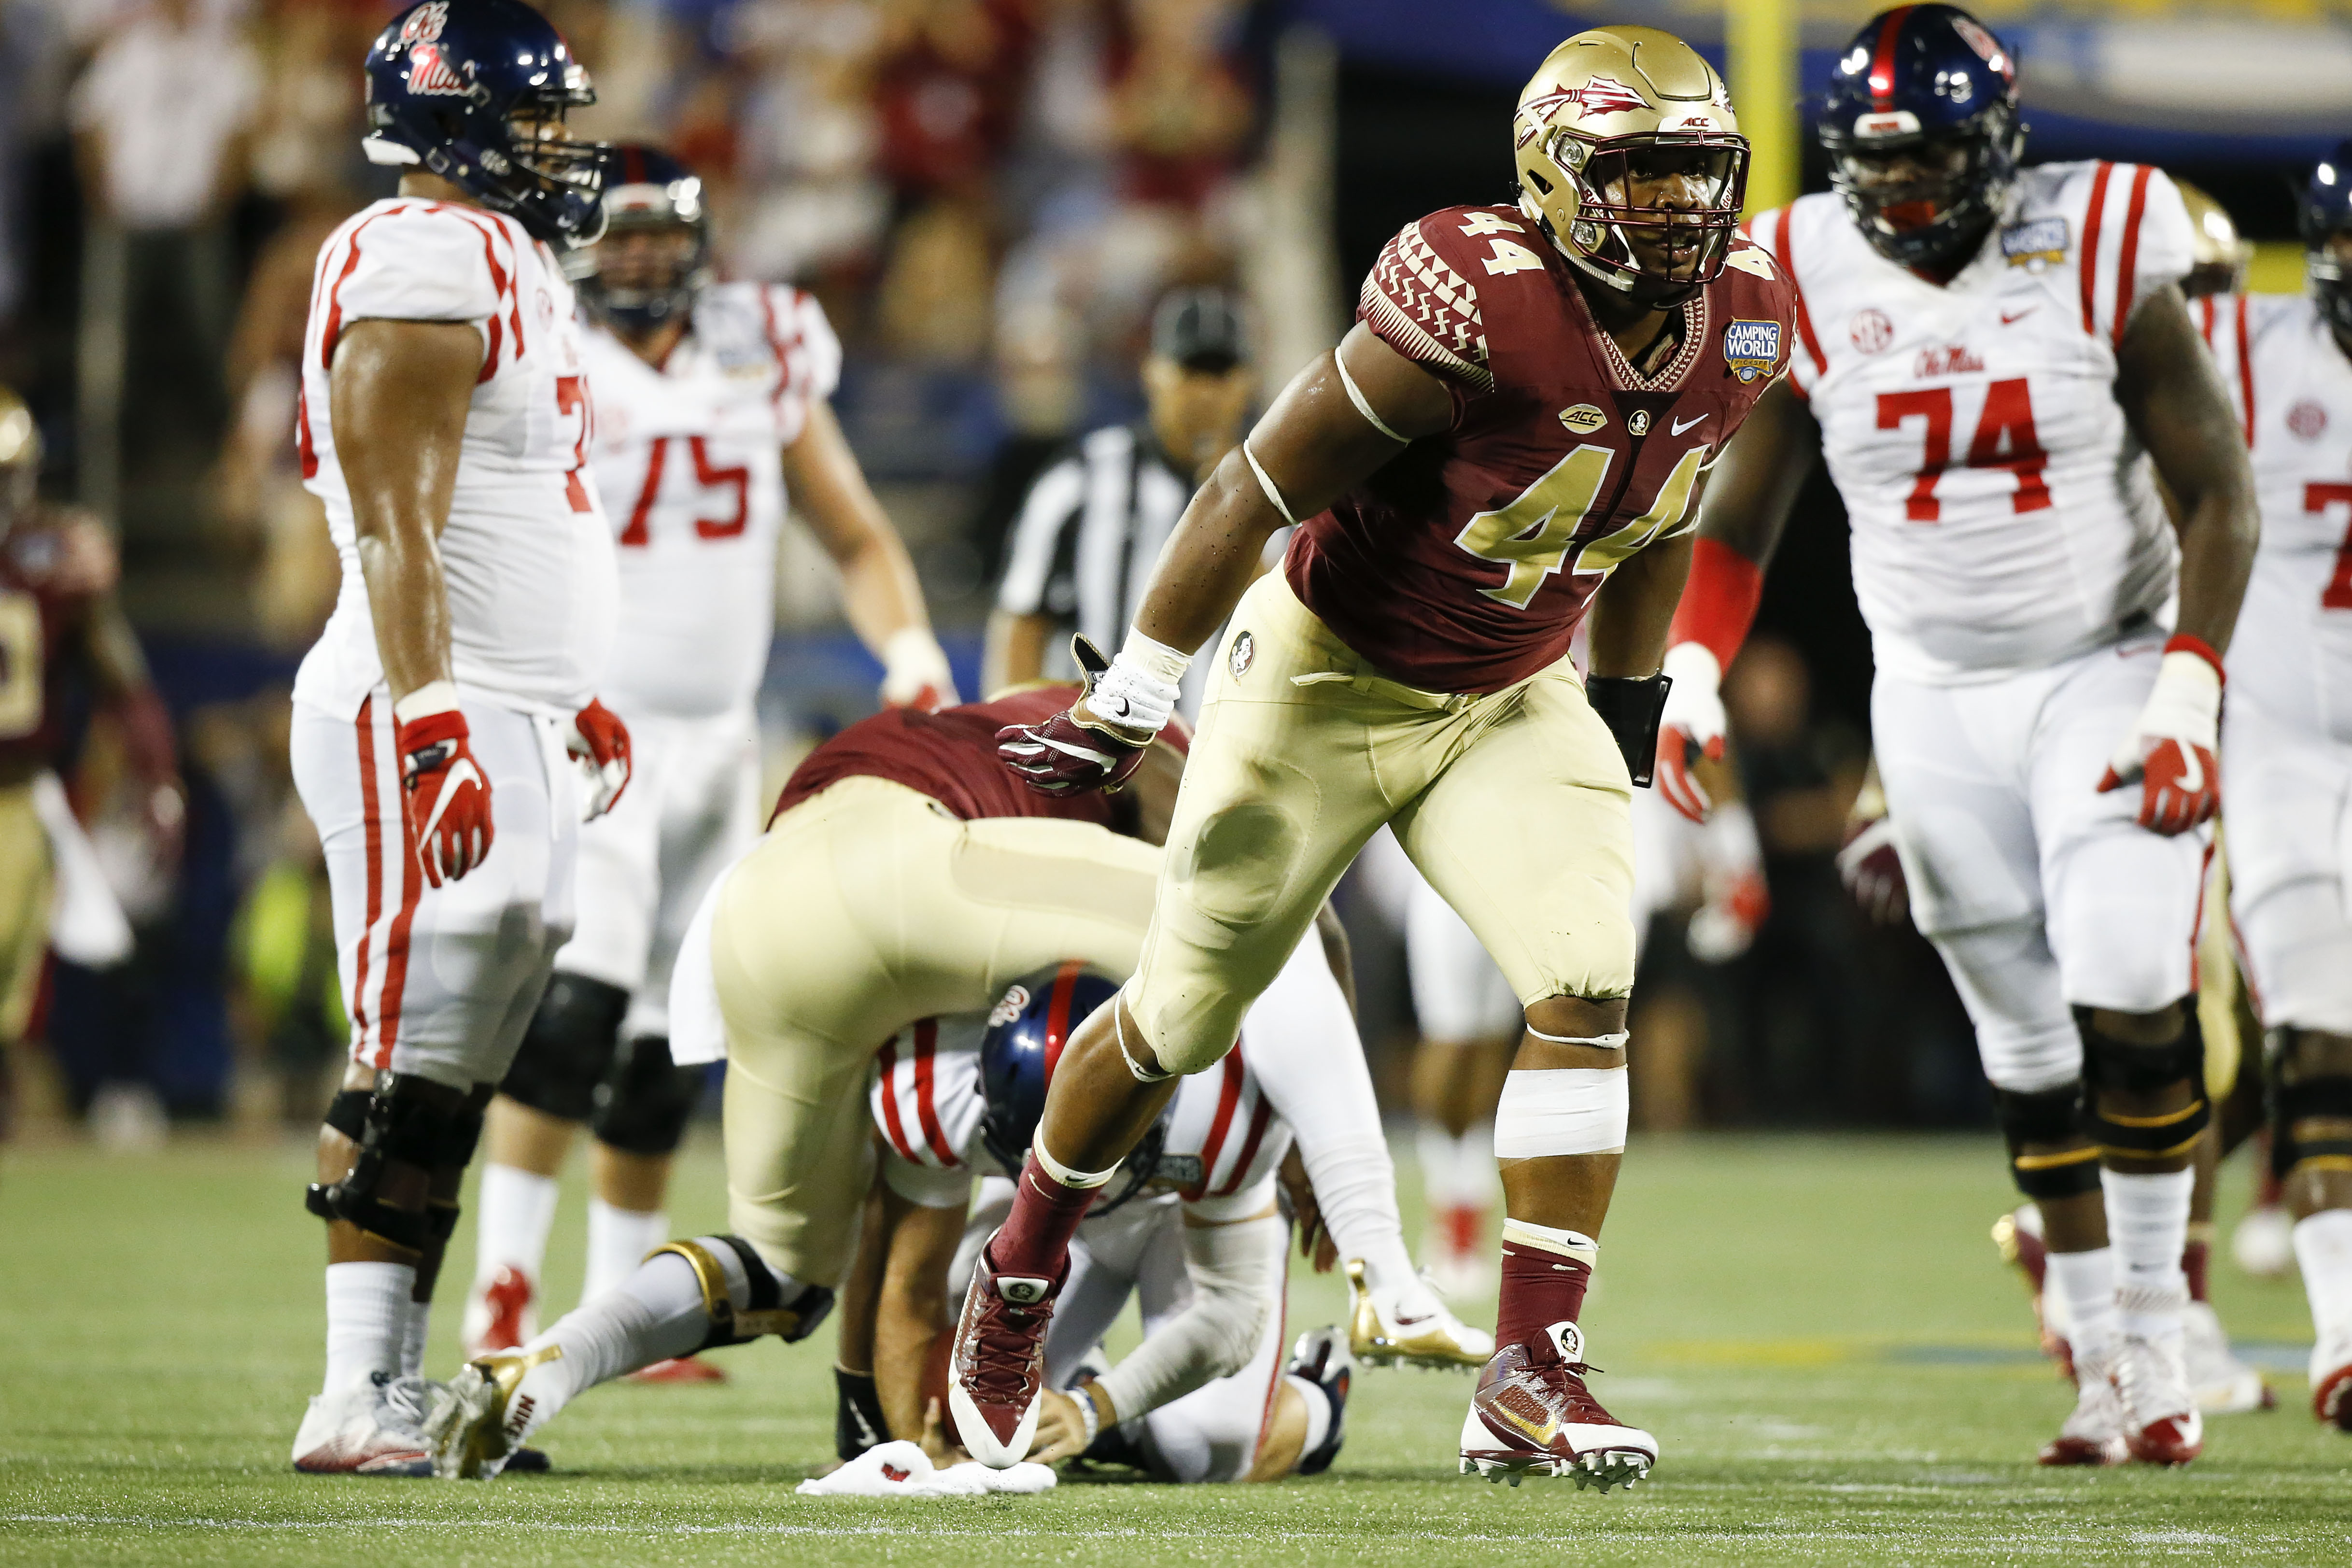 Nfl draft 2017 top prospects from florida state football nfl draft 2017 top nfl prospects from florida state football voltagebd Choice Image